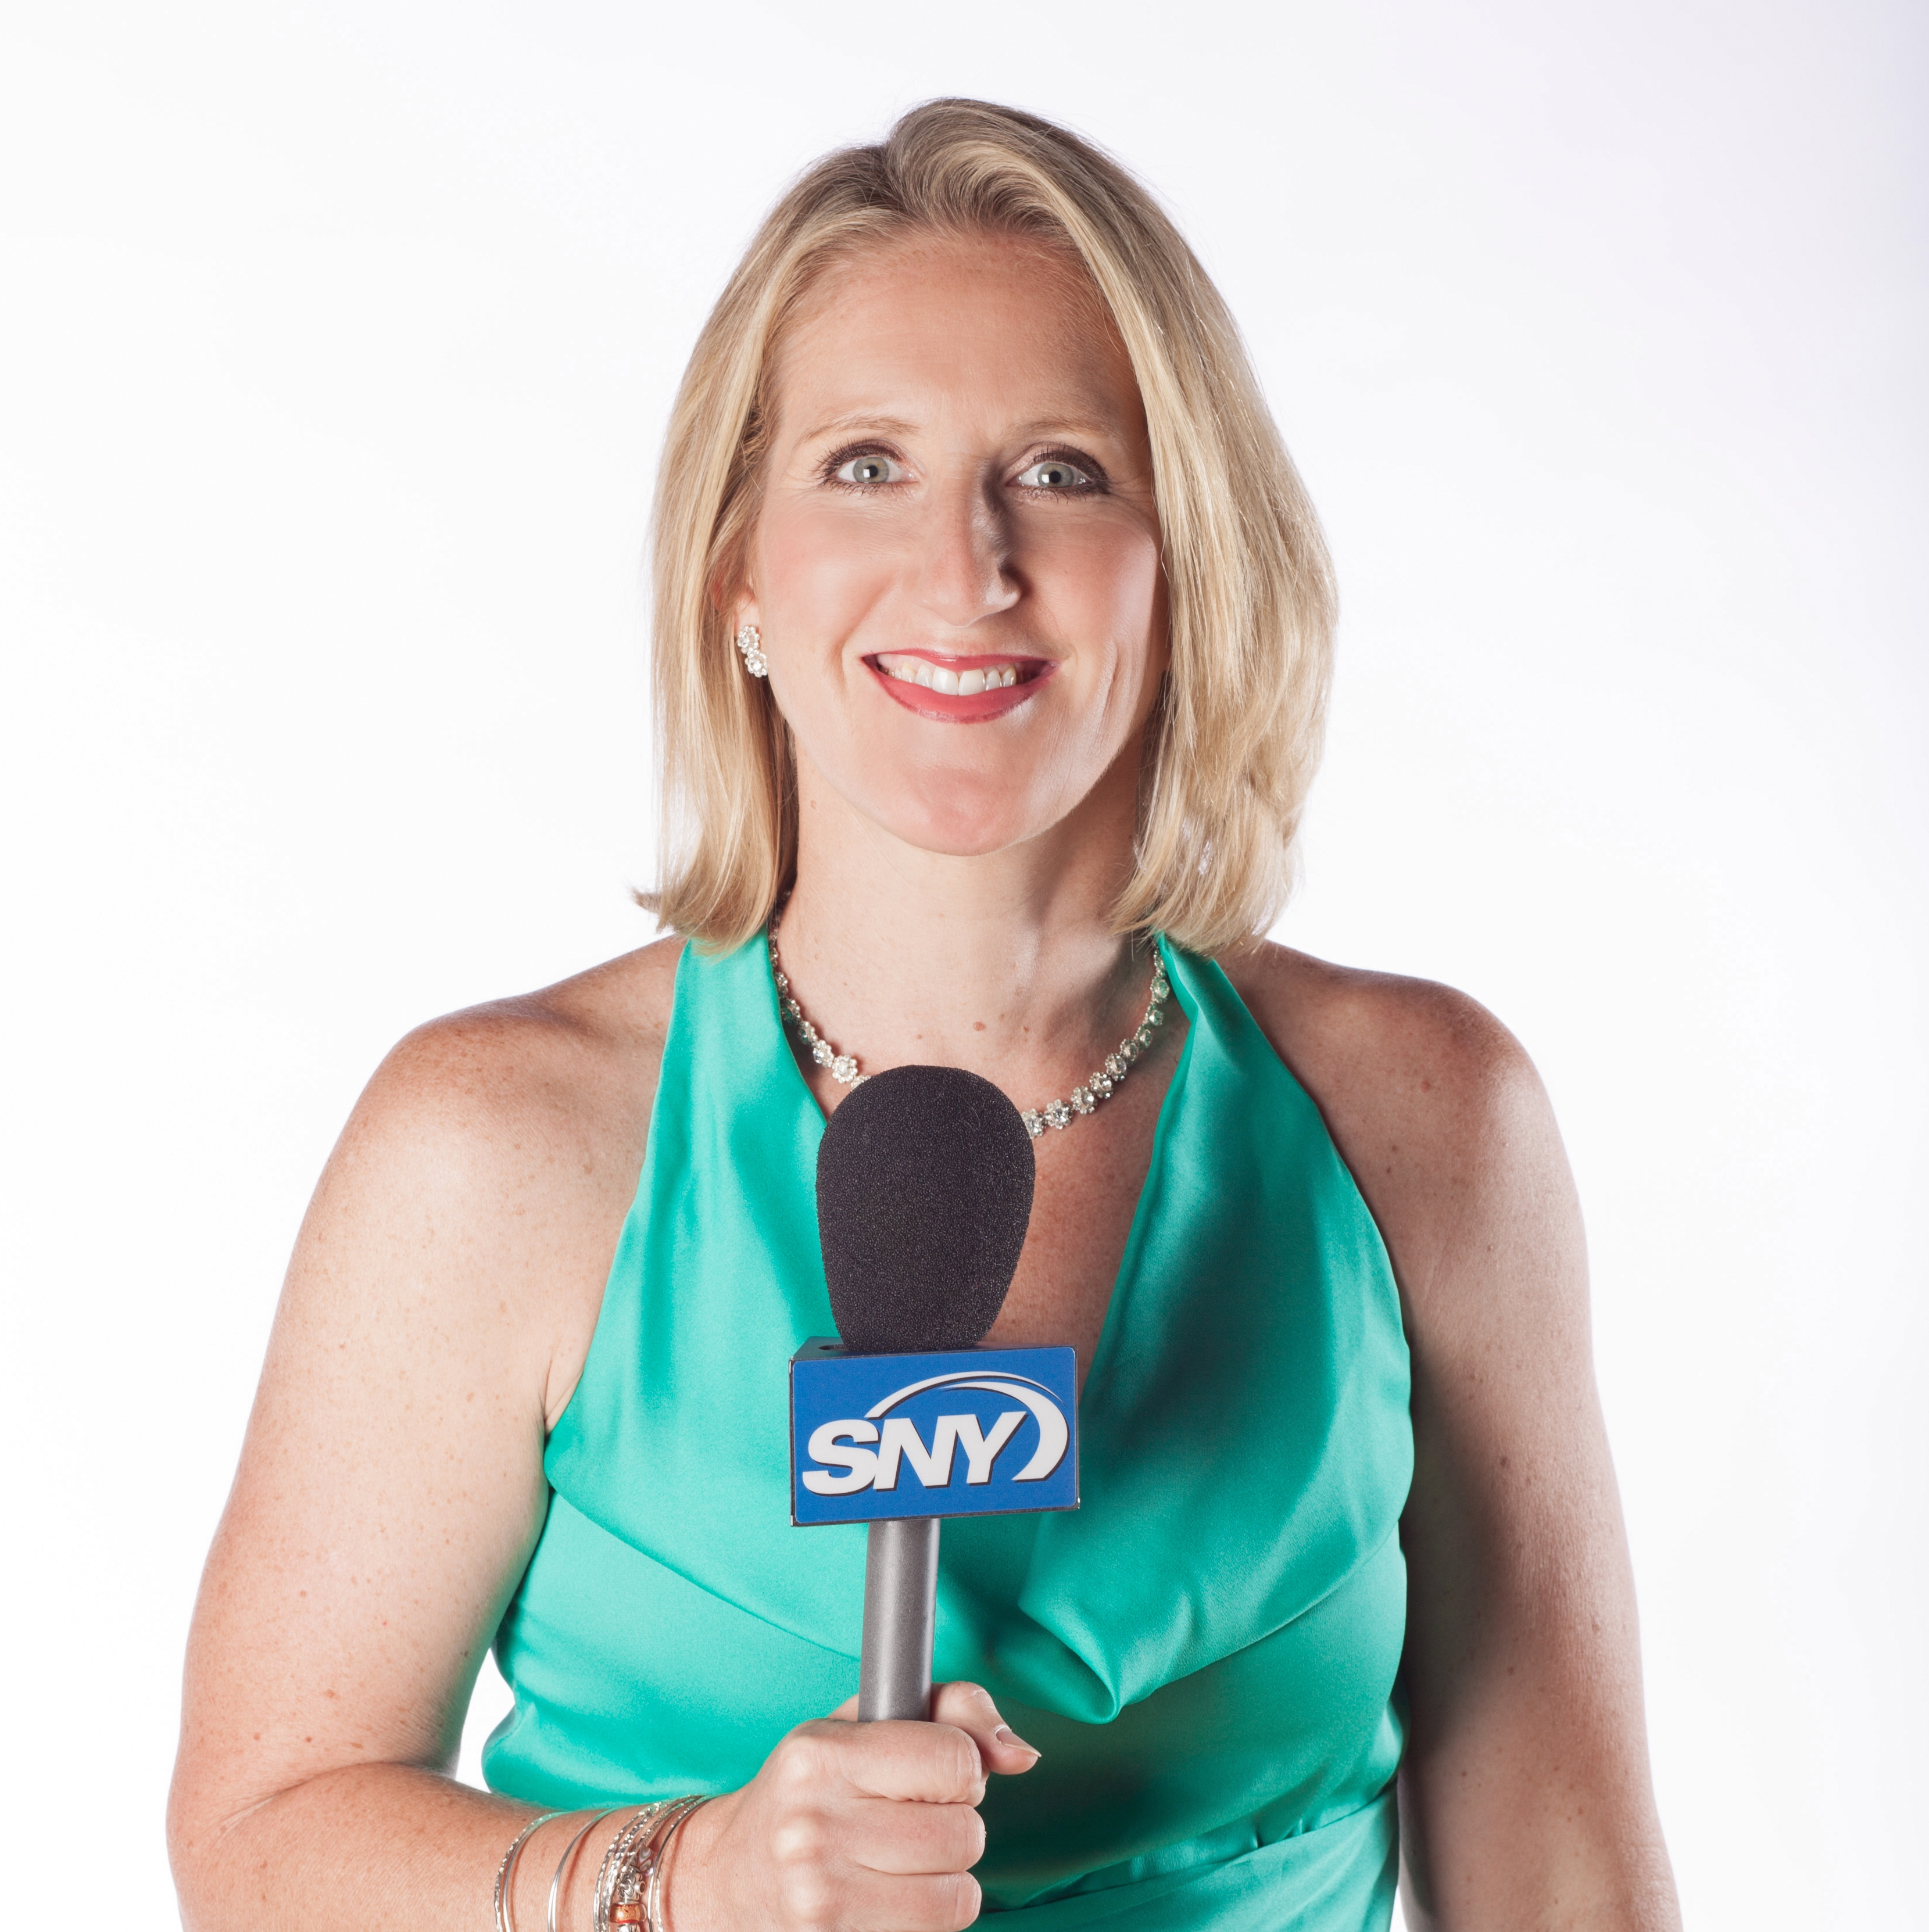 "Meghan Culmo is SNY's color analyst for the eleven-time national champion UConn women's basketball program. She has served in this role since 2012.  Prior to joining SNY, Meghan Culmo has been a color analyst on radio and television all over the country for more than a decade. She has appeared on Connecticut Public Television, ESPN, MSG and Lifetime Television, among others. While at CPTV, she hosted ""The Geno Auriemma Show"", which she has done for the past 15 years.  Meg's playing career featured several historic milestones, including the first ever BIG EAST Regular Season and Tournament Championships. She was a 1,000-point scorer and All BIG EAST performer -- as well as Captain her senior year. Meg earned Most Outstanding Player at the 1991 BIG EAST Championships as the Huskies claimed the title. Her resume also includes being a member of the coaching staff that helped guide the Huskies to their very first NCAA National Championship."